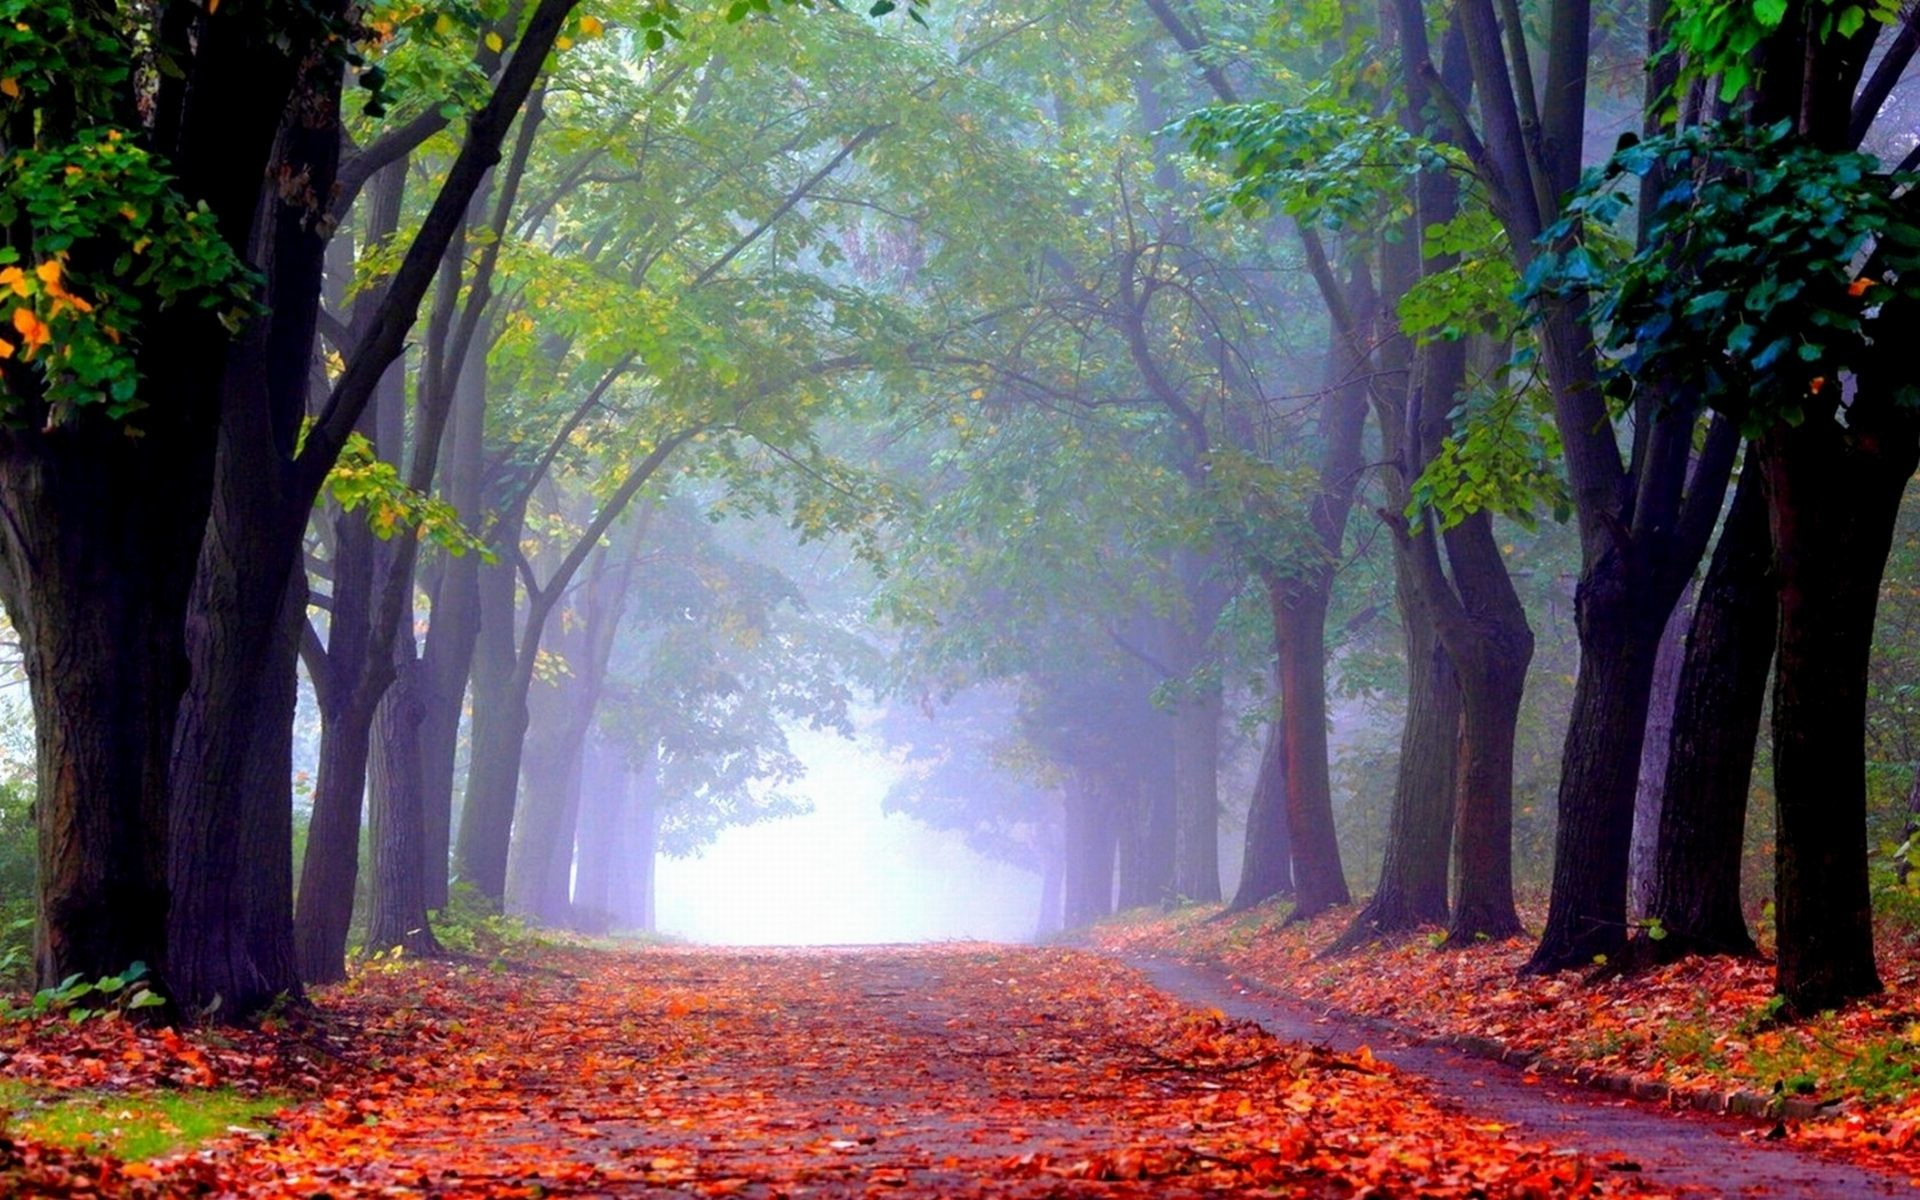 Foggy Forest Wallpaper (74+ images)